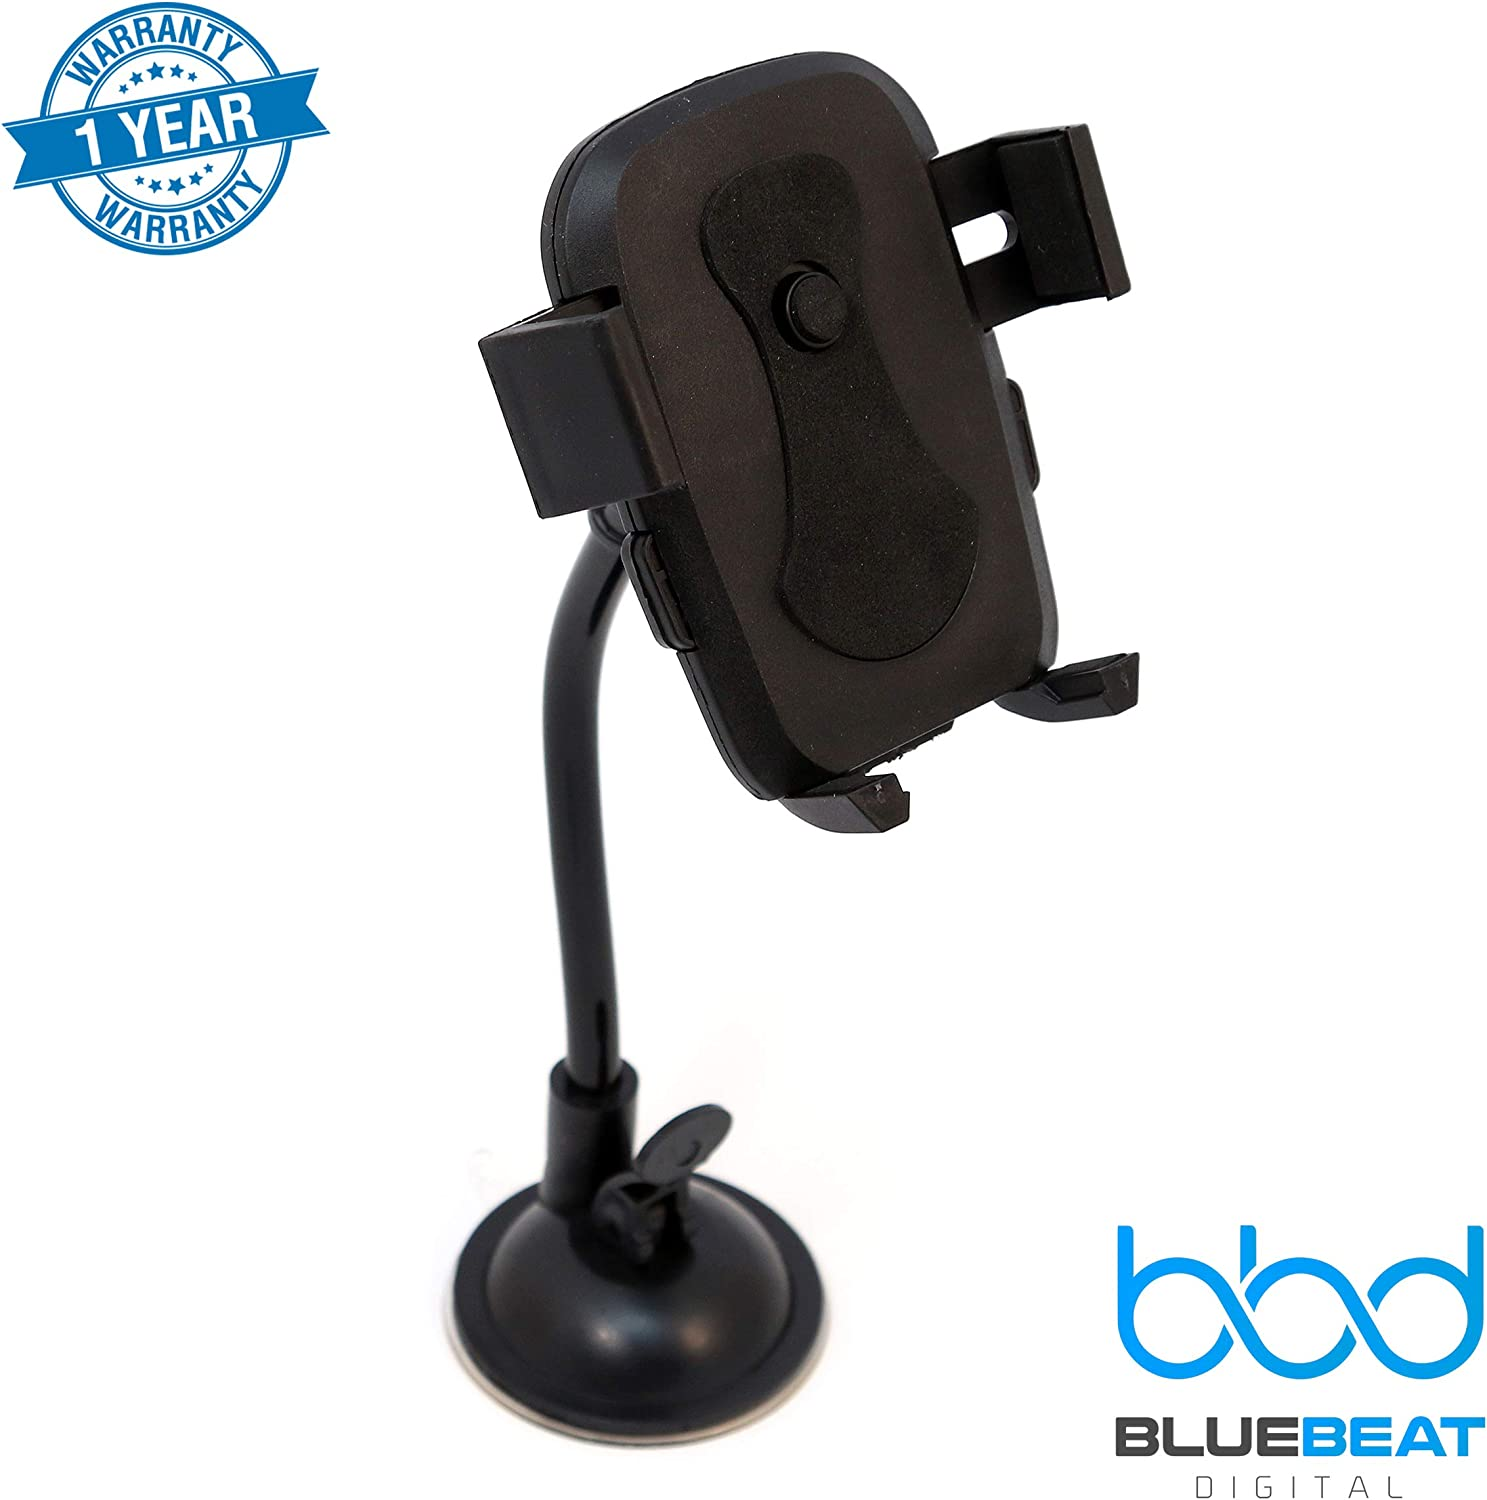 Black Car Phone Mount Android Moto Nokia Samsung LG Smartphones by Blue Beat Digital Pixel Easy One Touch Dash//Windshield Cell Phone Holder Universal Compatability for iPhone